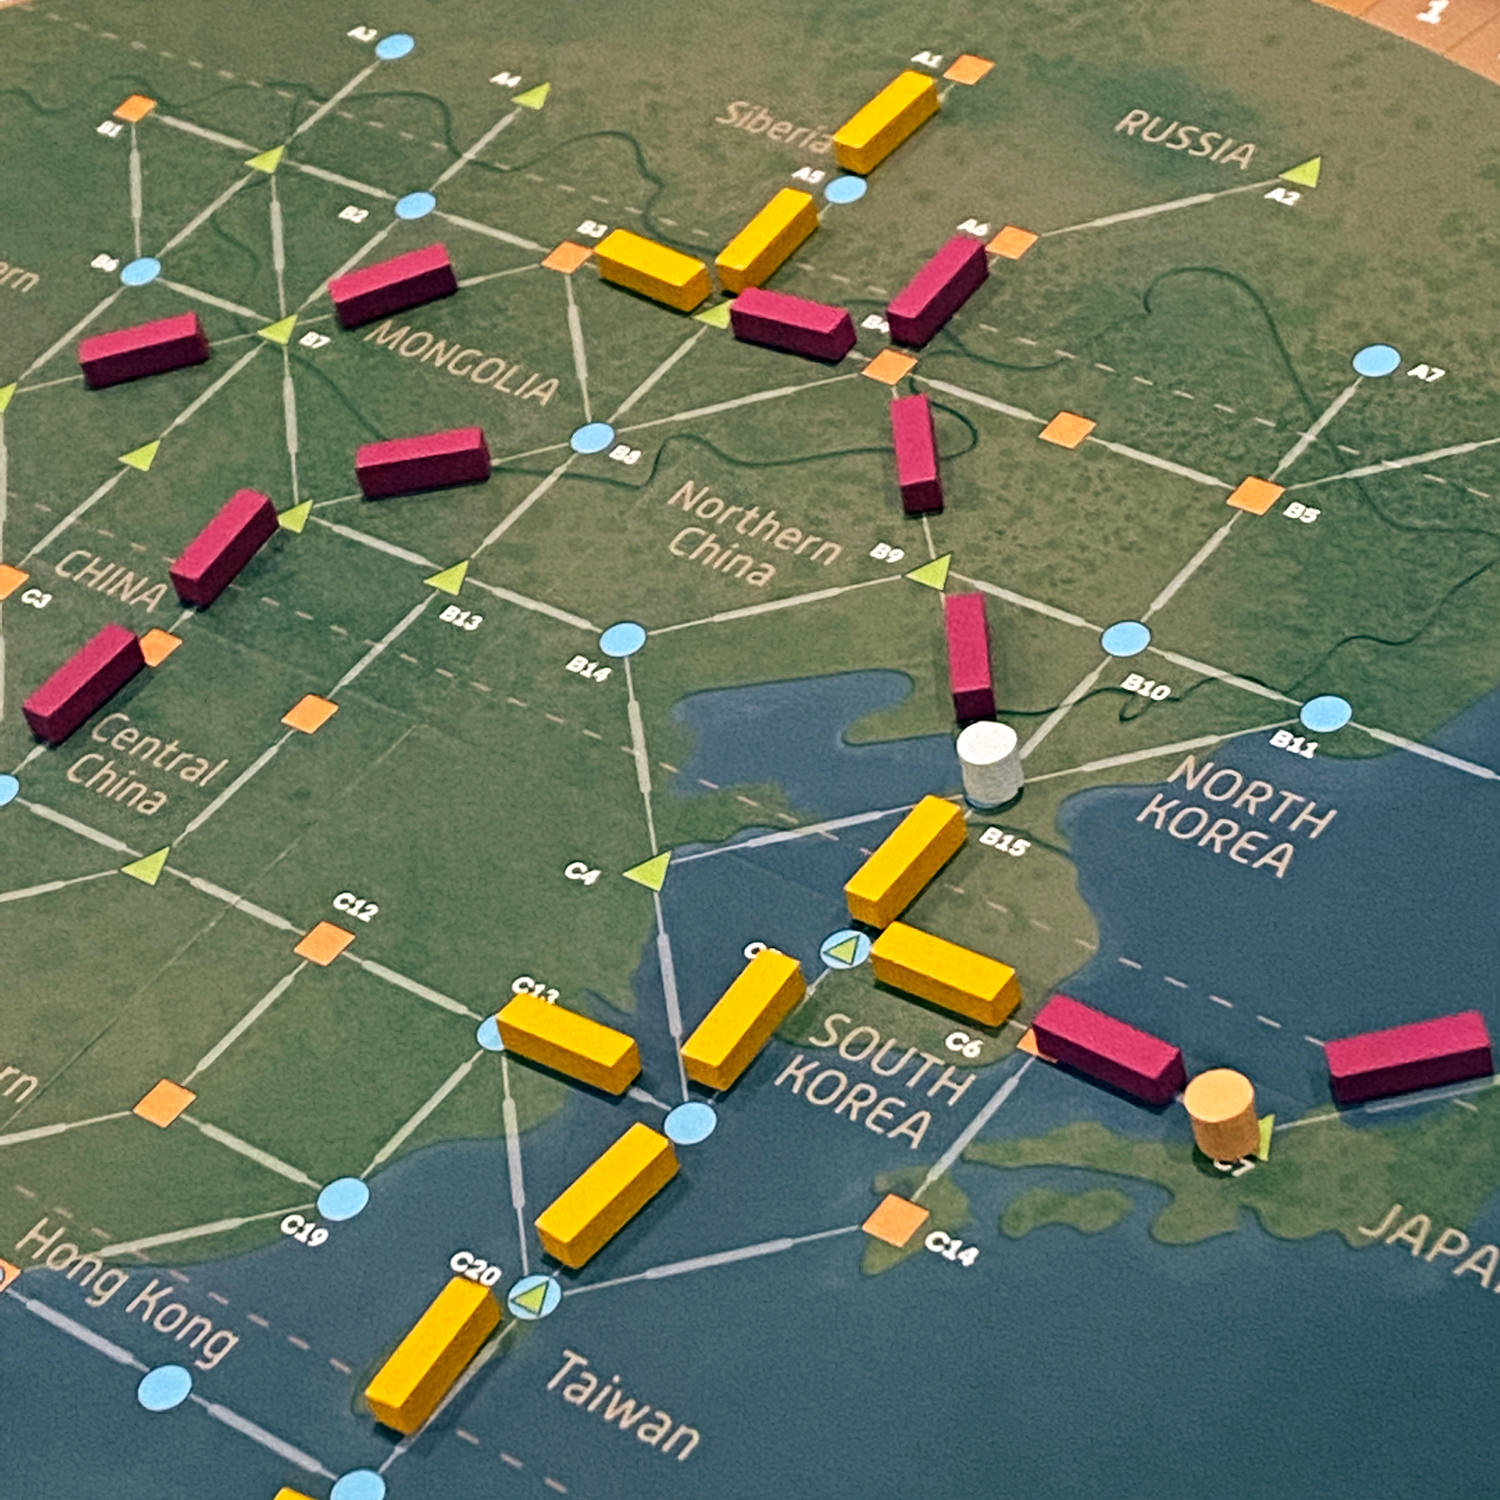 Detail of the Fly-A-WayBoard Game Links